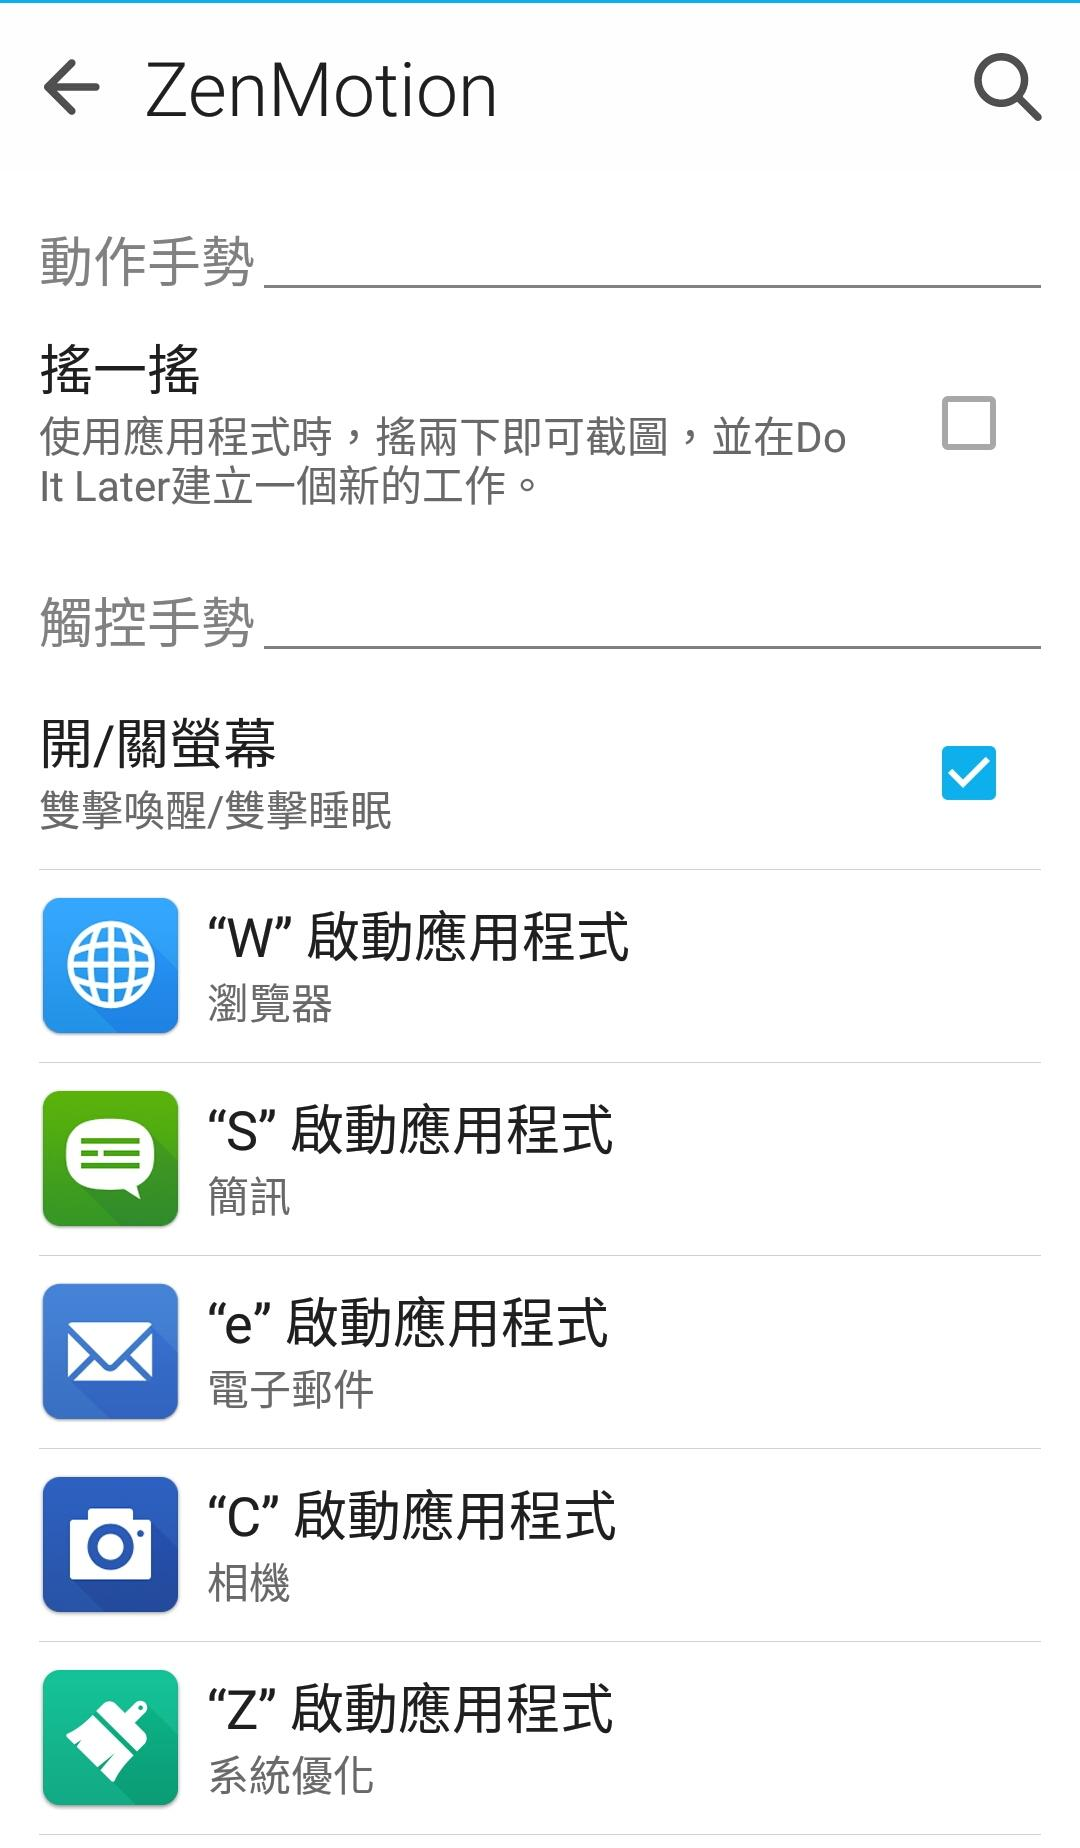 [開箱] 一機難求Zenfone2 ZE551ML 4GB-32GB入手開箱 - XFastest - ZenMotion.jpg